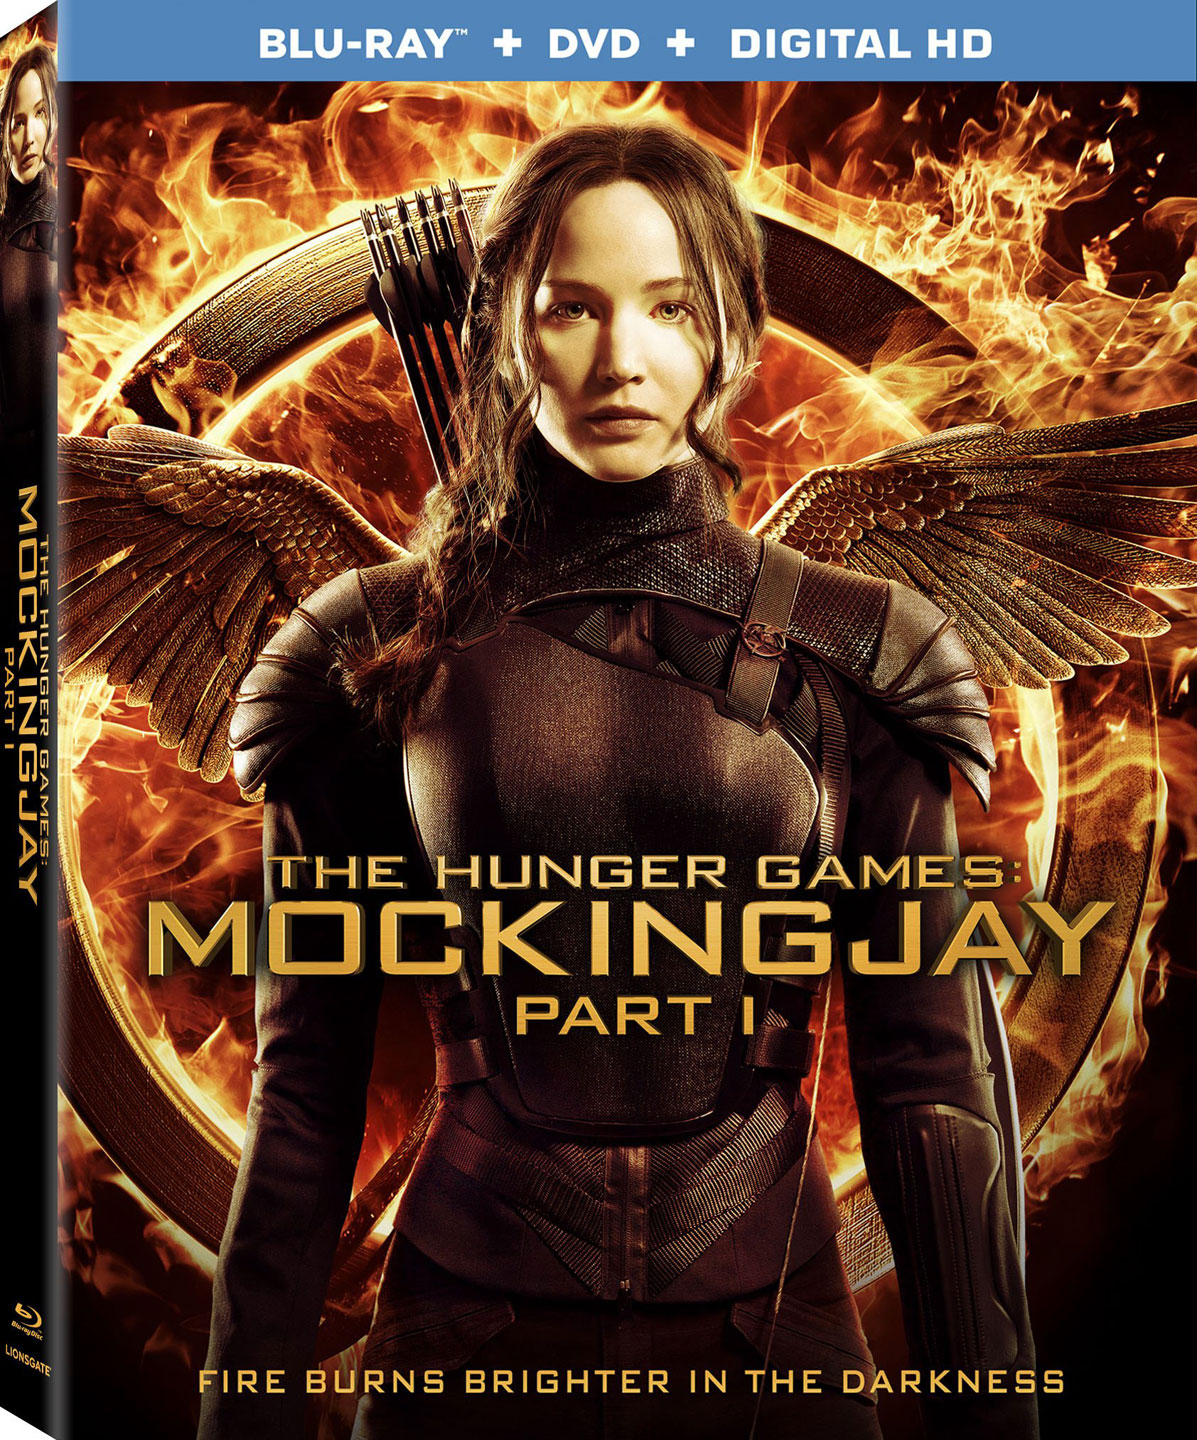 the-hunger-games-mockingjay-part-1-blu-ray-cover